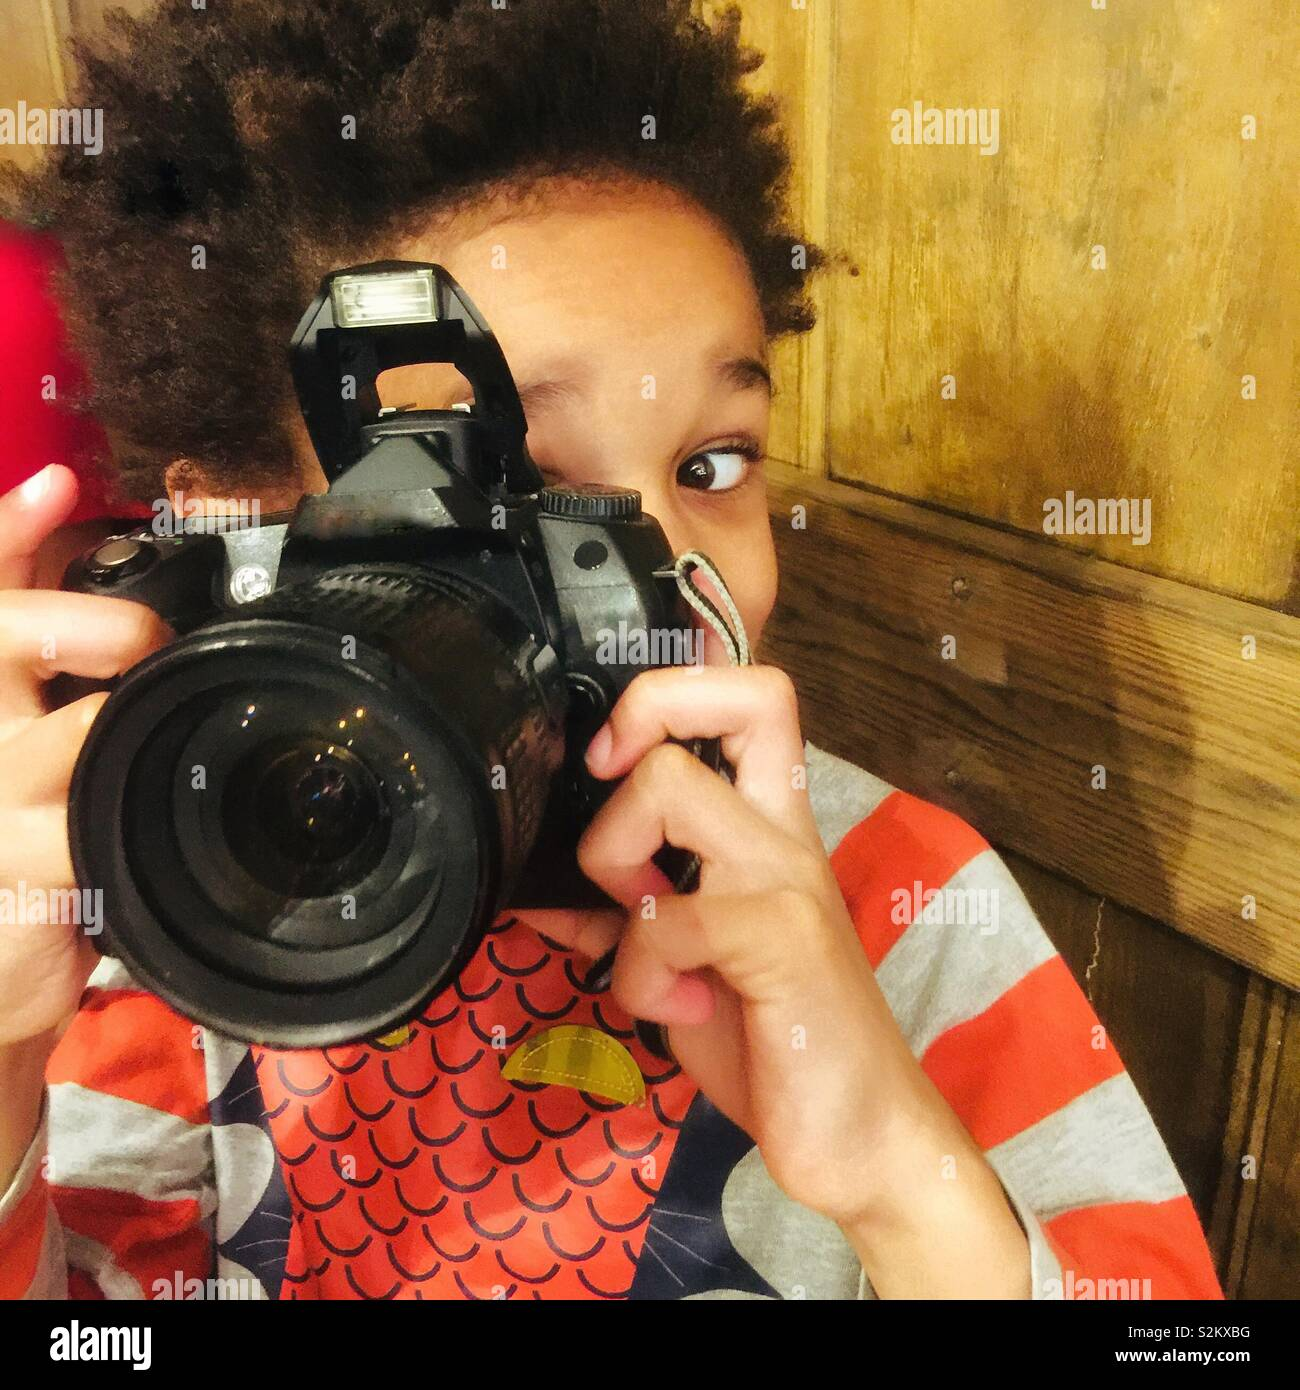 A little boy plays with a camera. - Stock Image